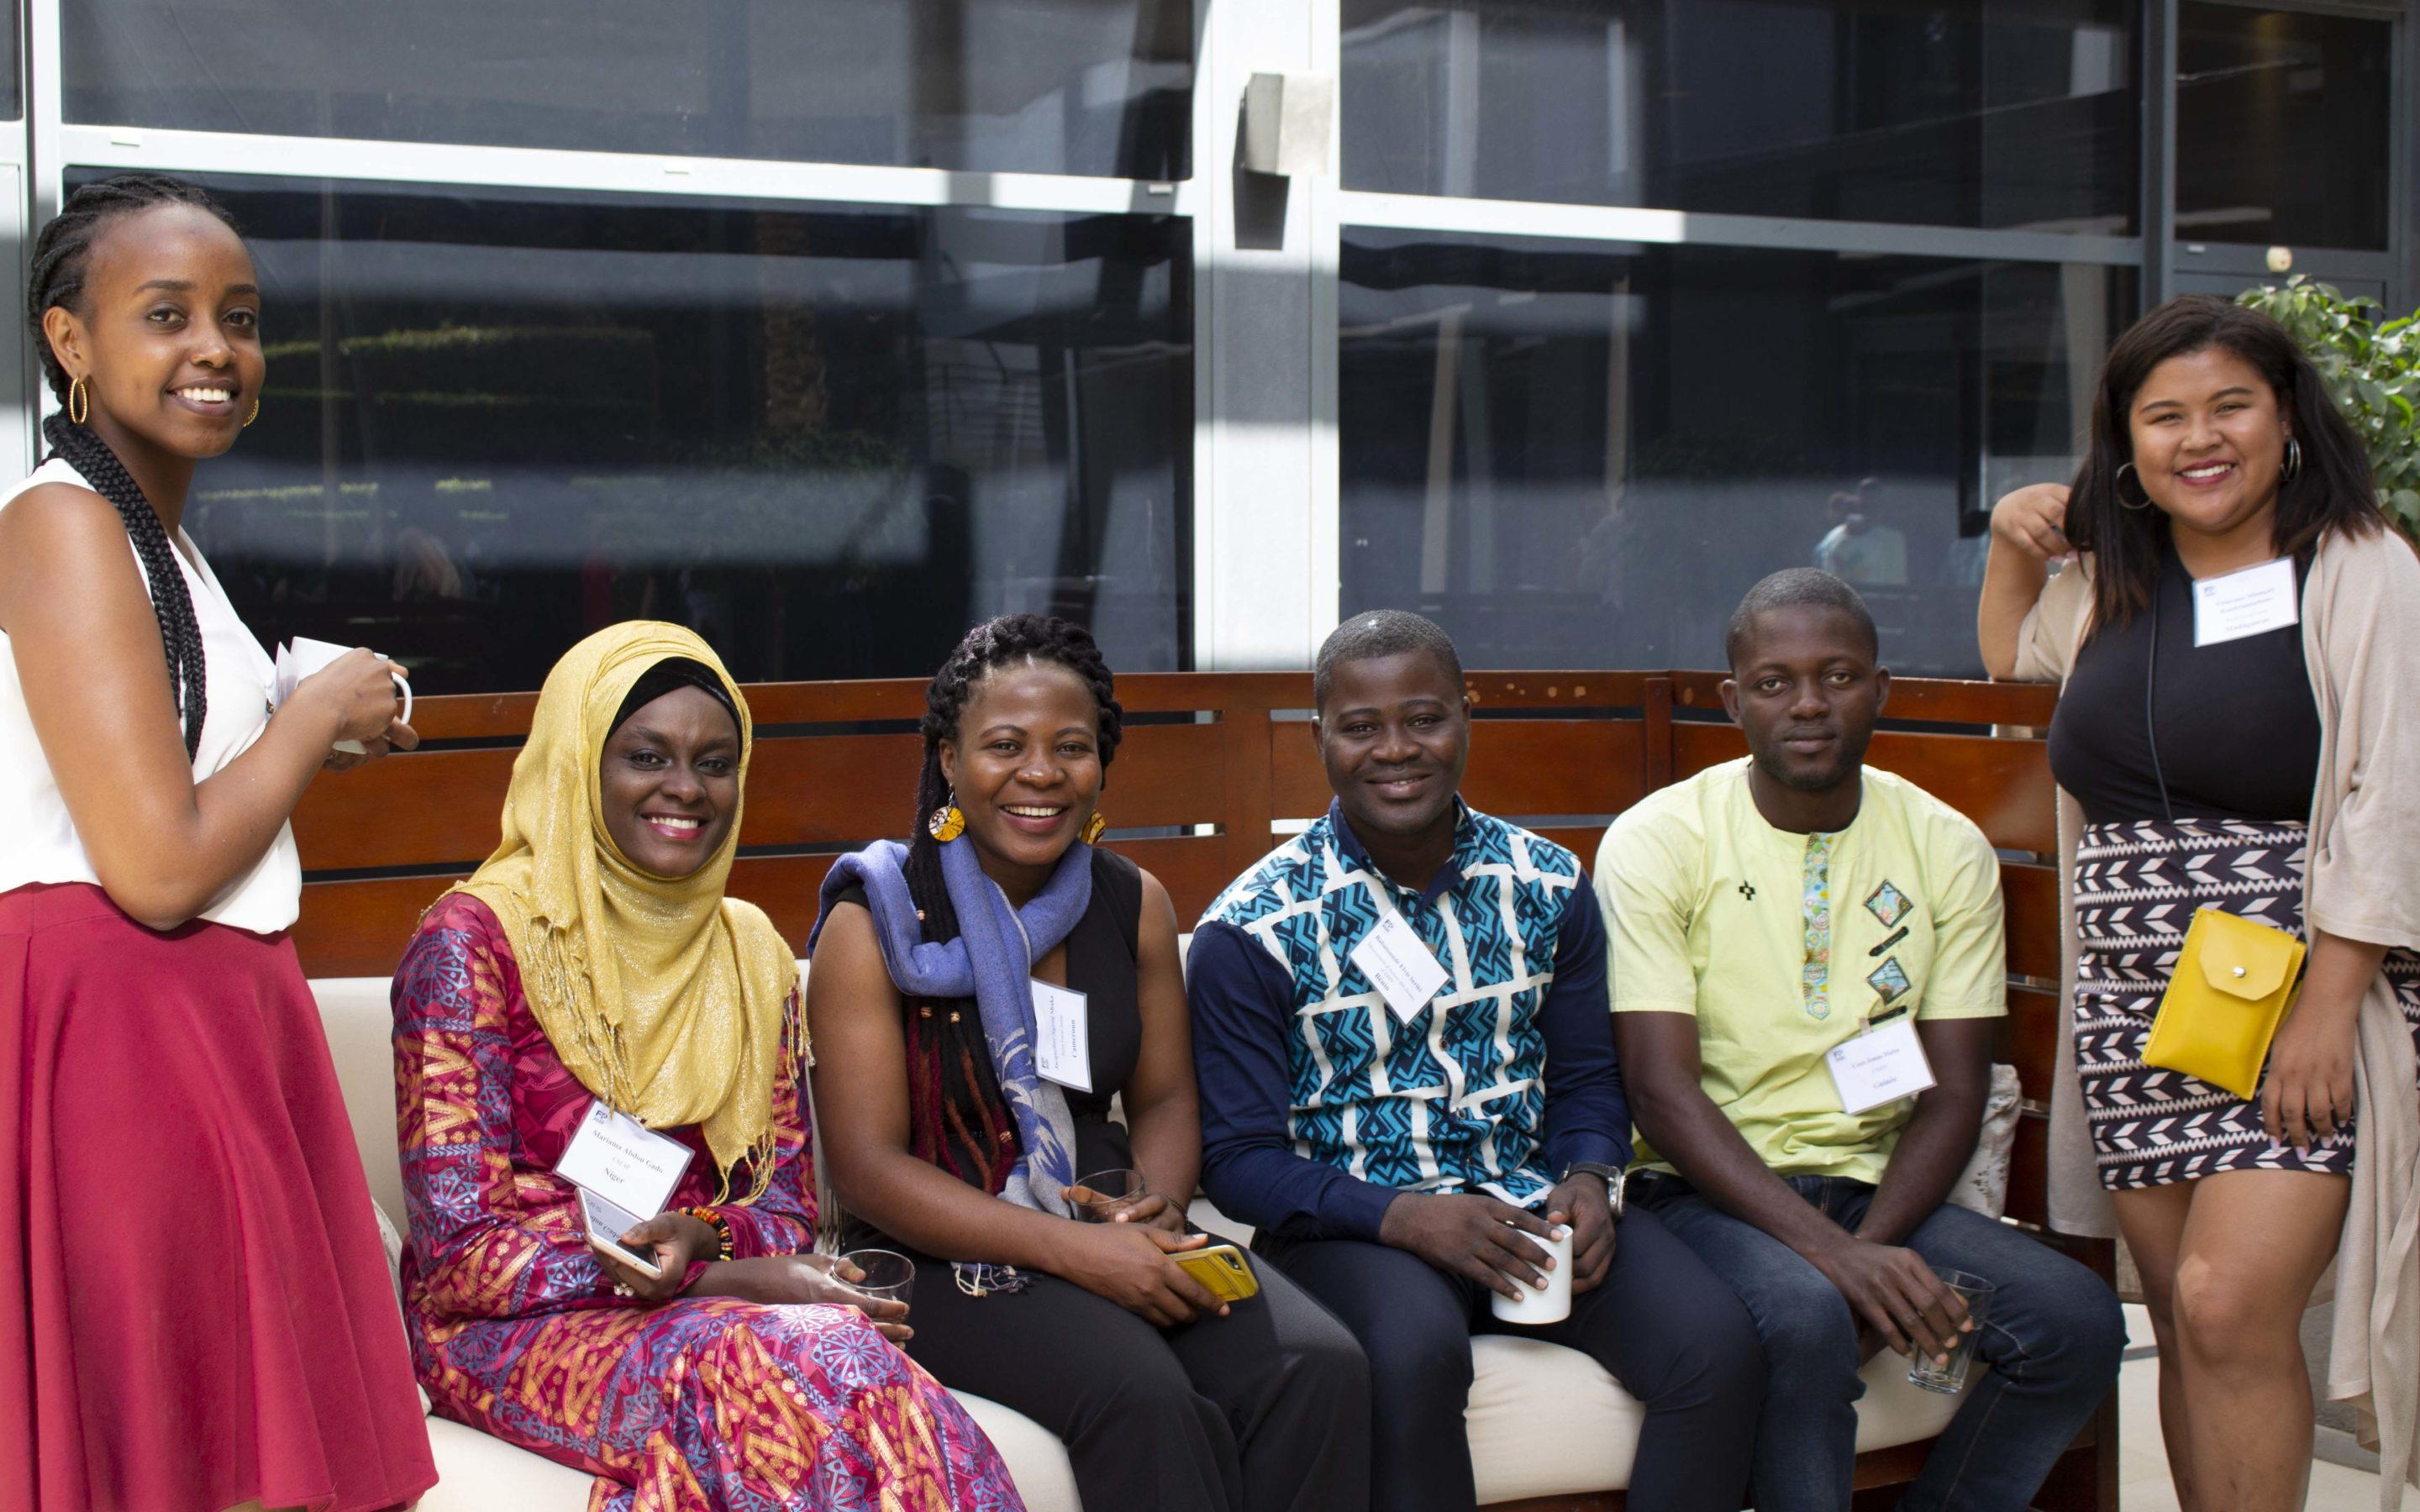 A mentoring journey for 6 francophone youth leaders